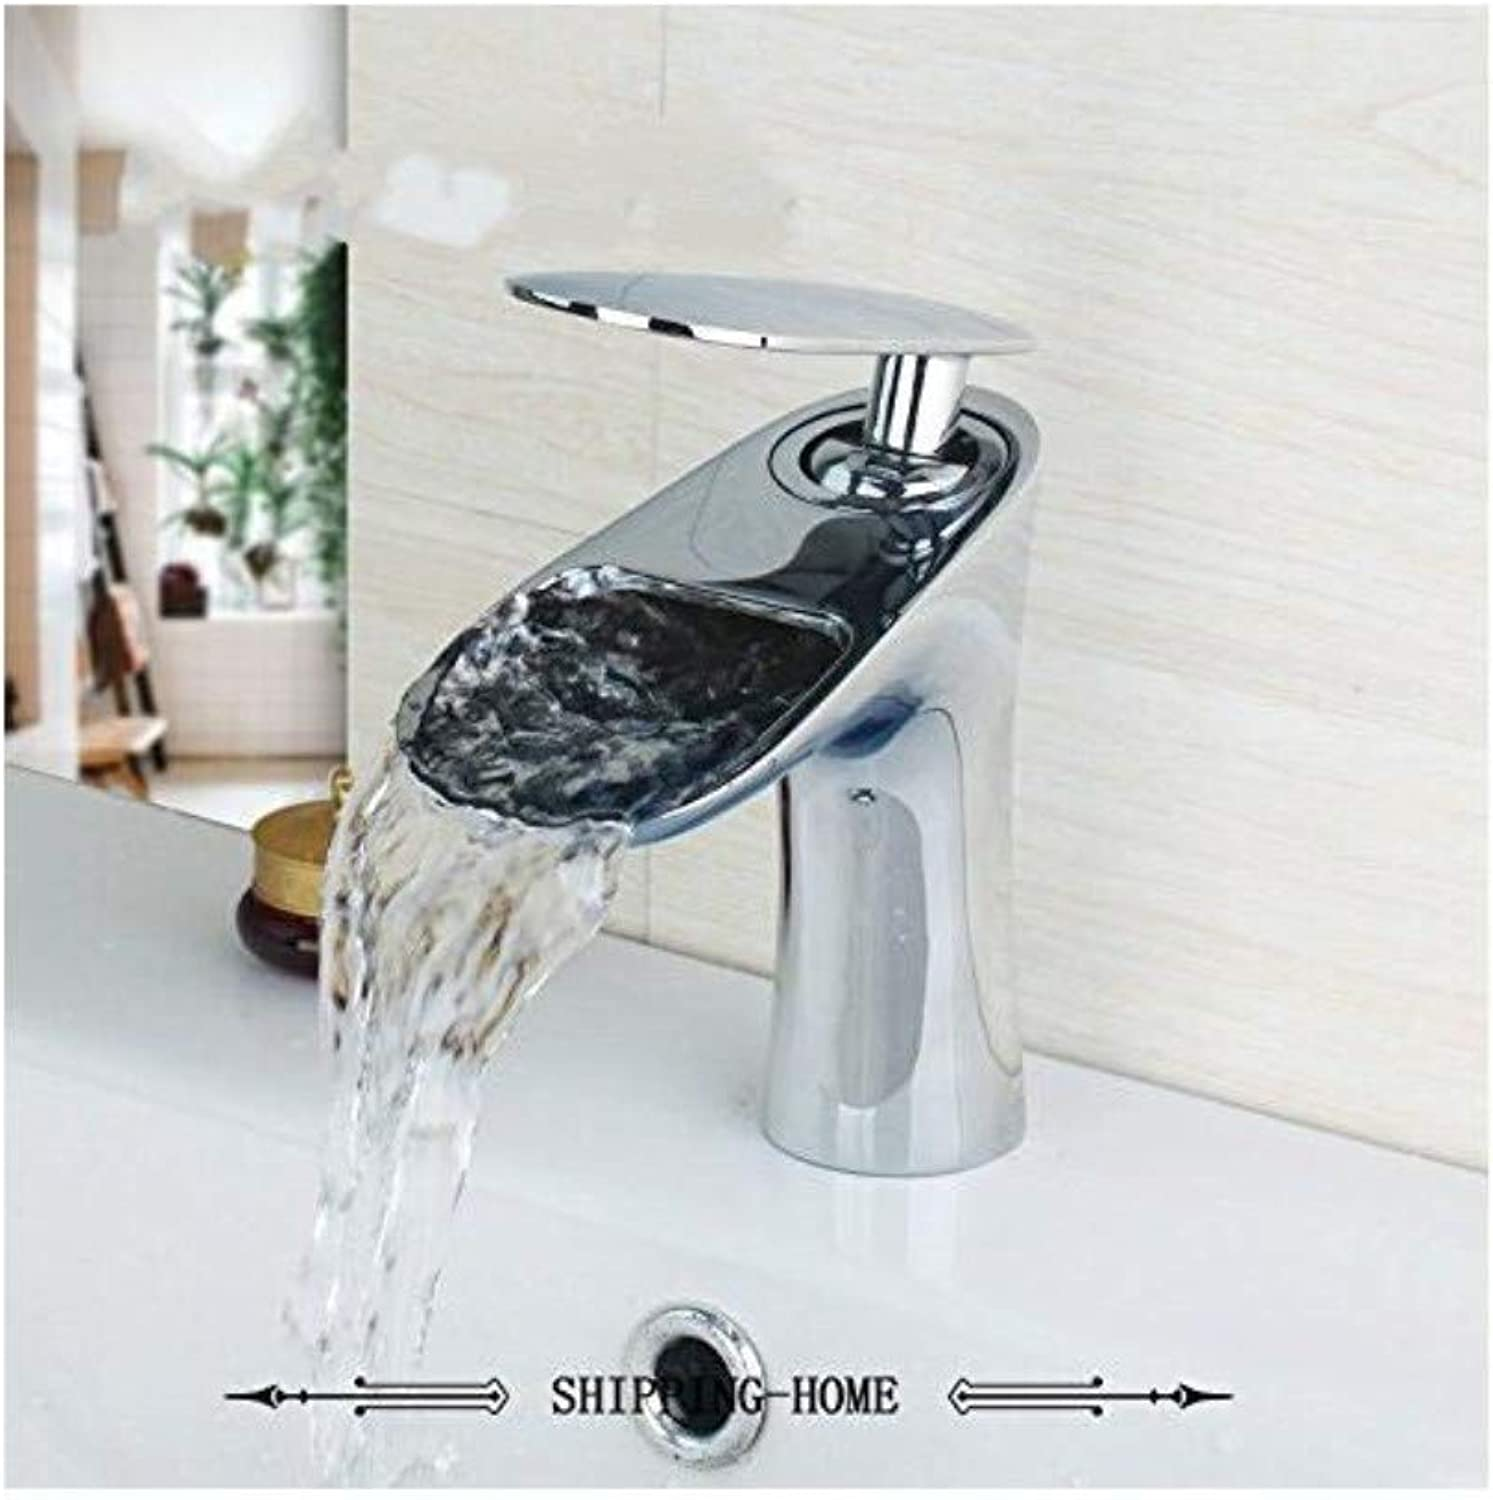 Faucet Kitchen Washing Basin Chrome Polished Faucet Silver Deck Mounted Waterfall Bathroom Wash Basin Sink Faucets Mixers & Taps